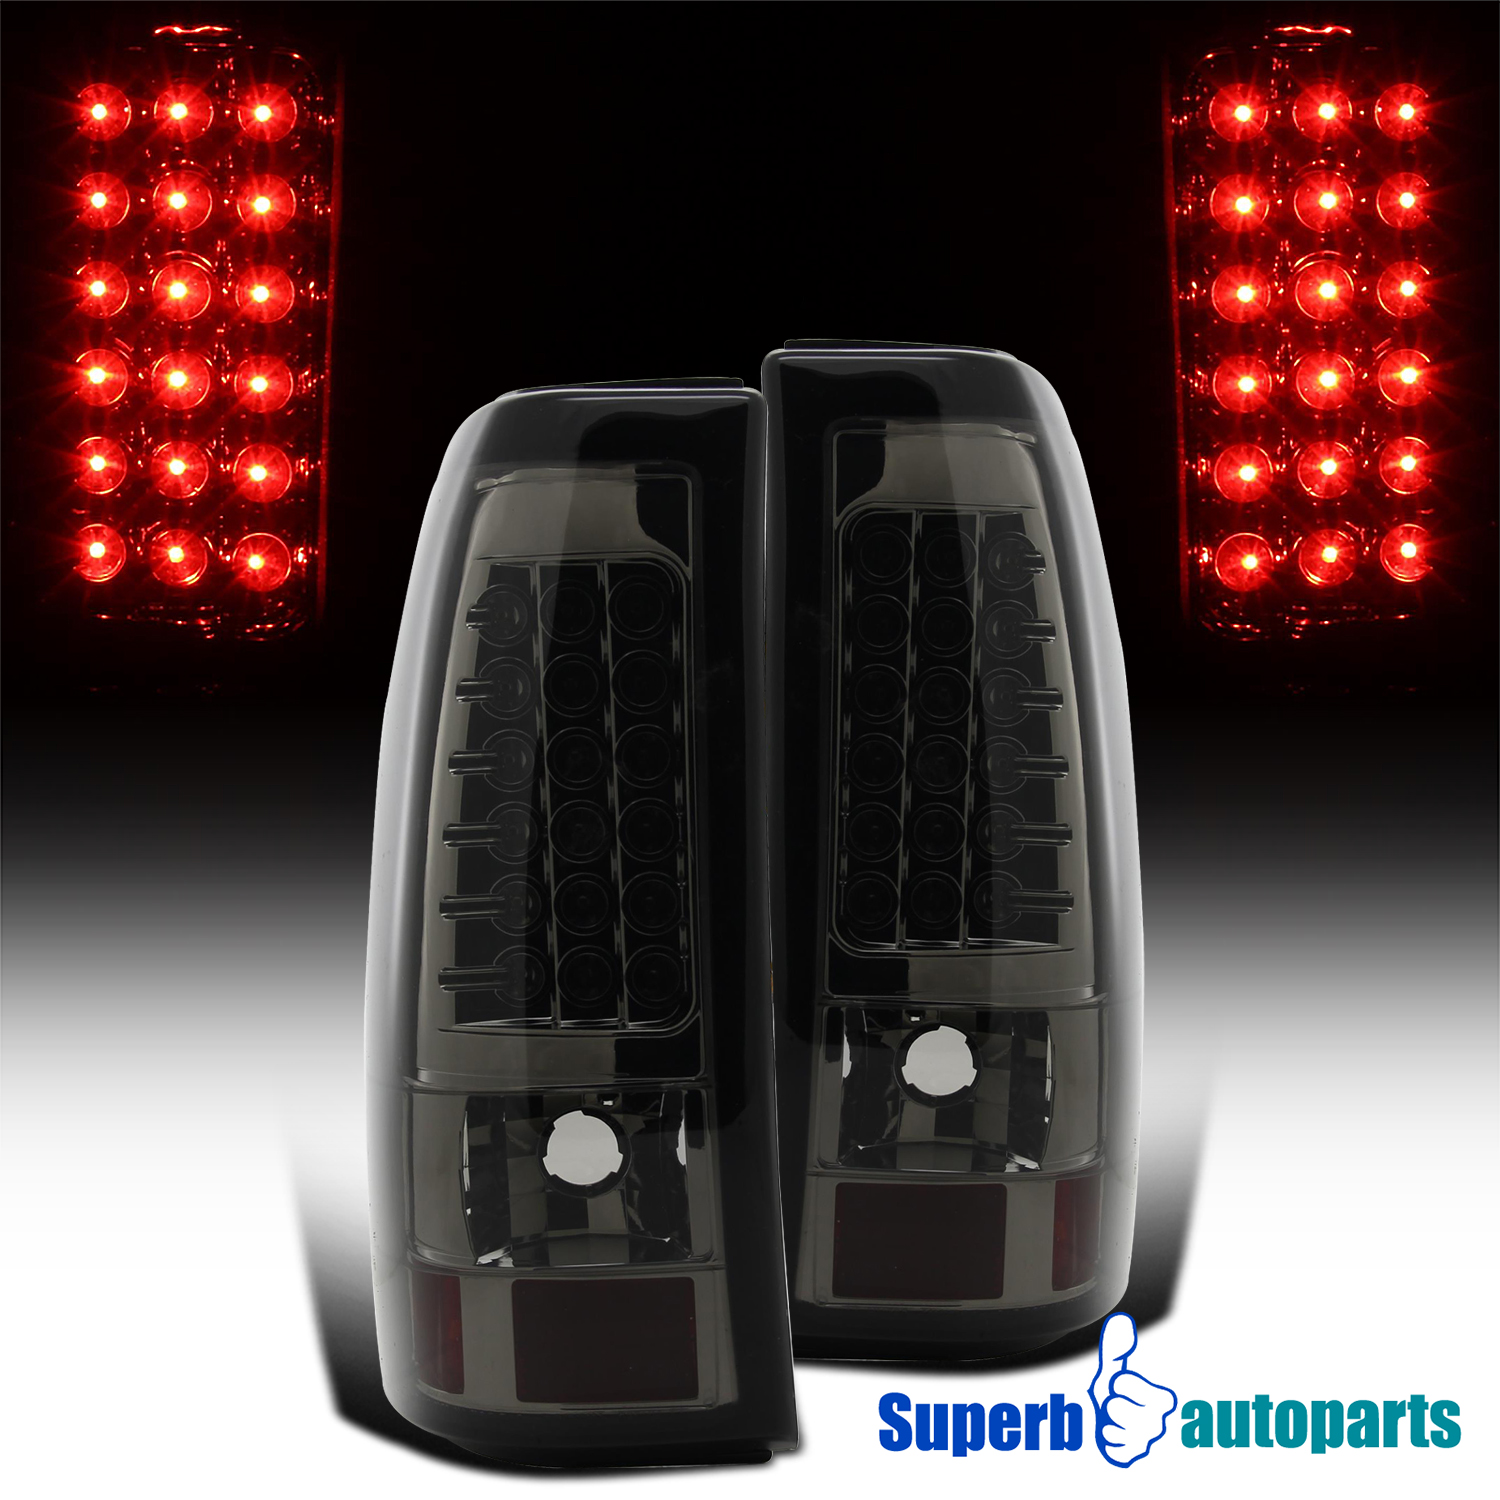 Details About For 2003 2006 Chevy Silverado Led Tail Lights Brake Lamps Smoke